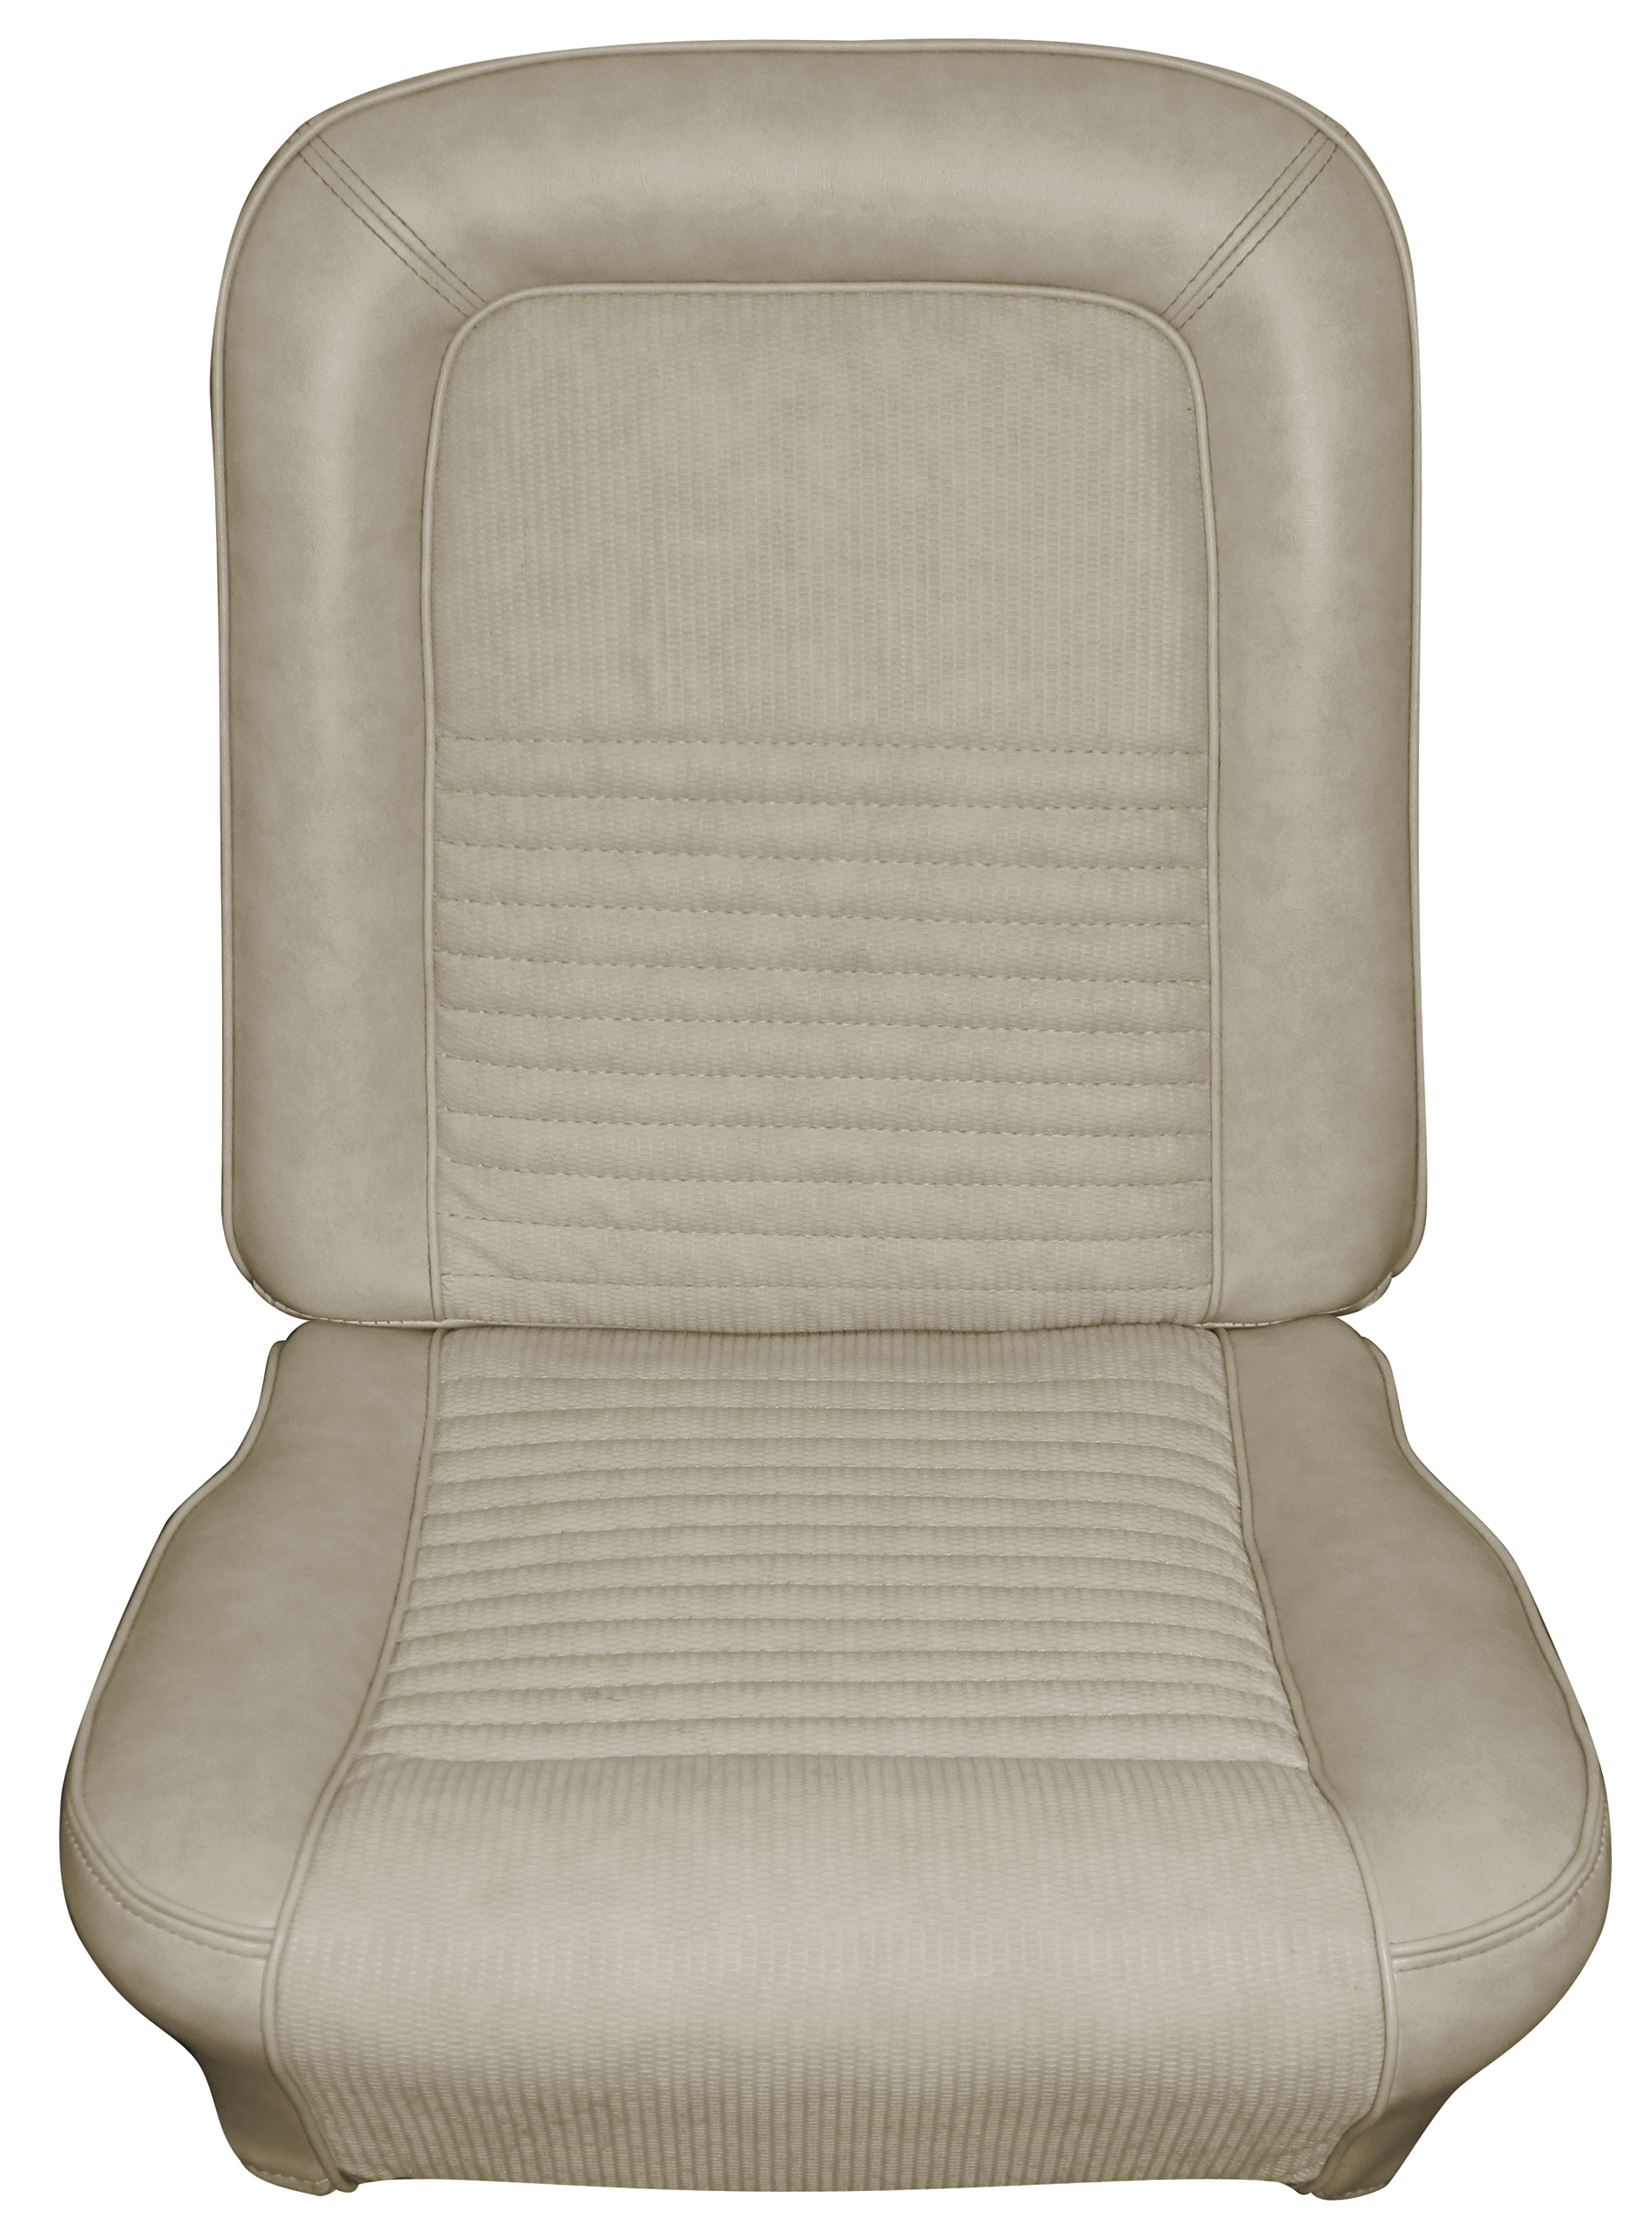 1967 Mustang Deluxe/Shelby Front Bucket Seats